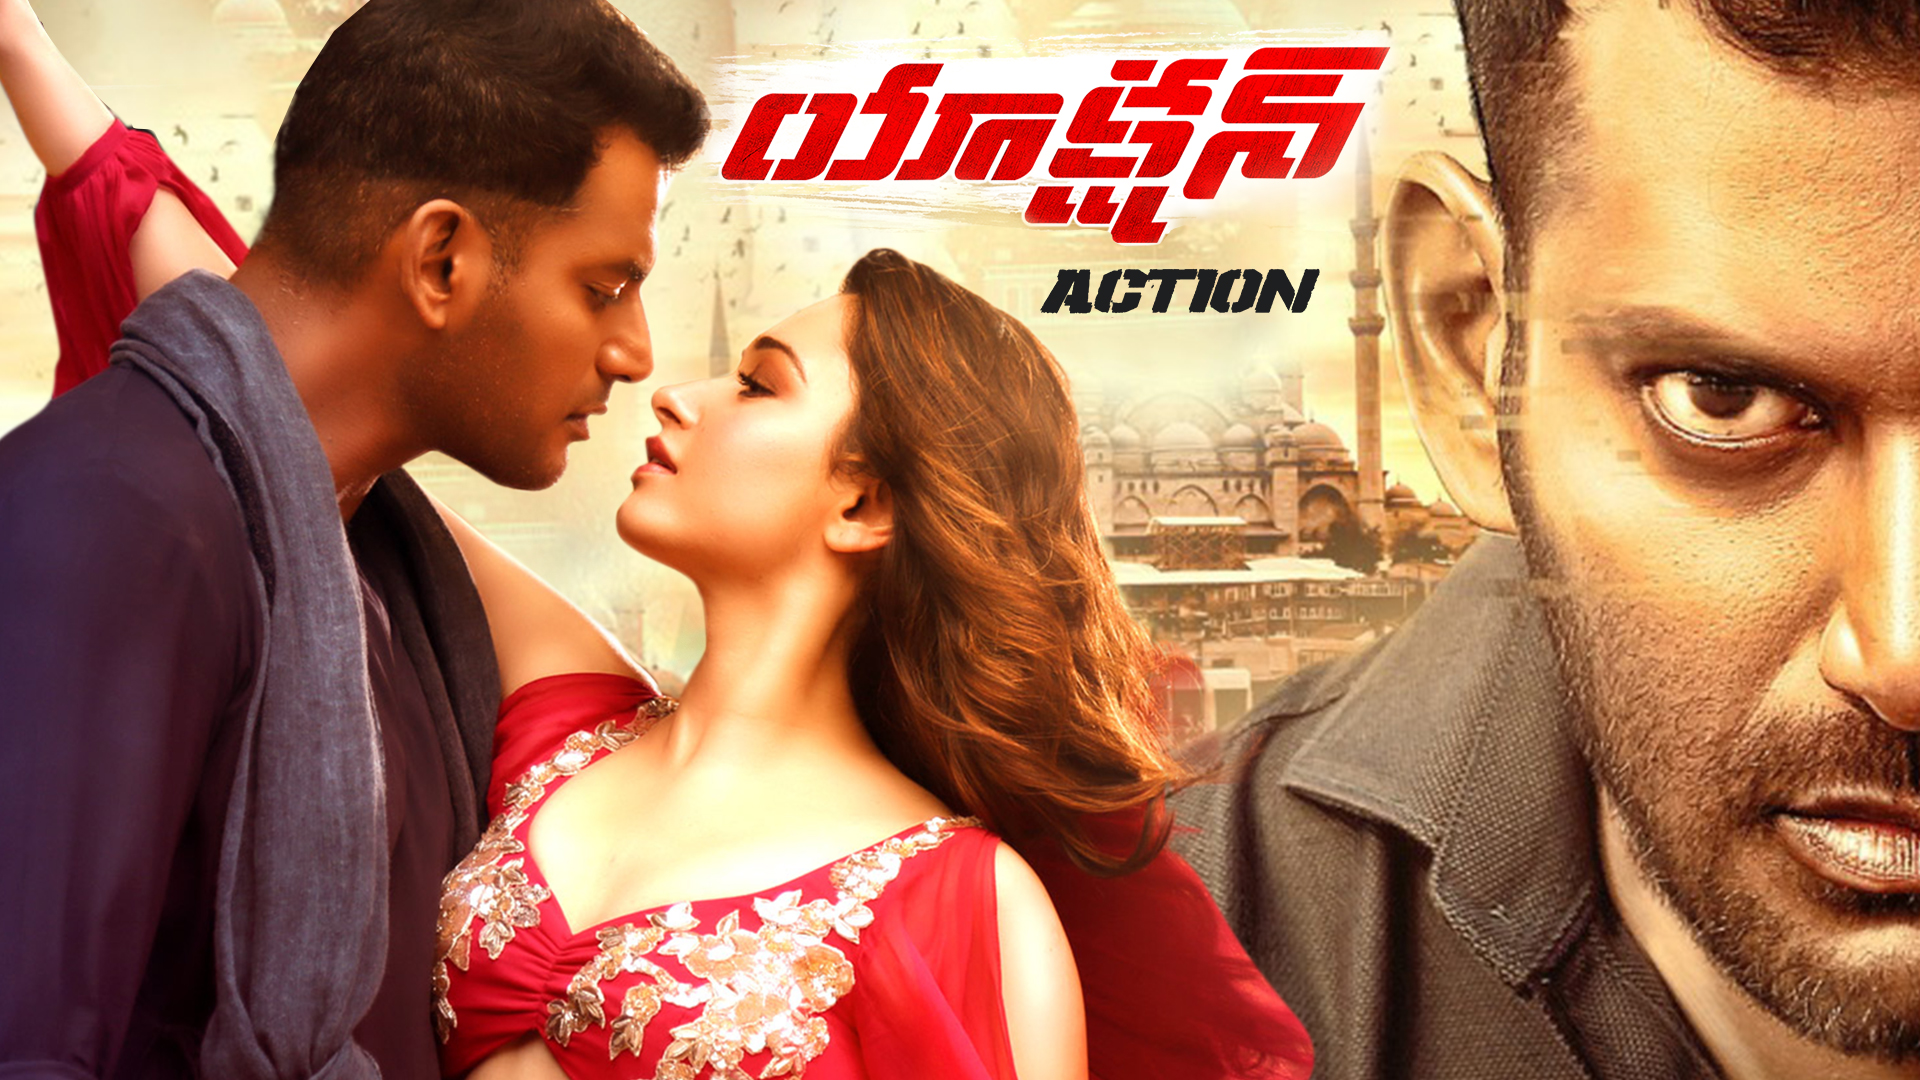 Action (Telugu)